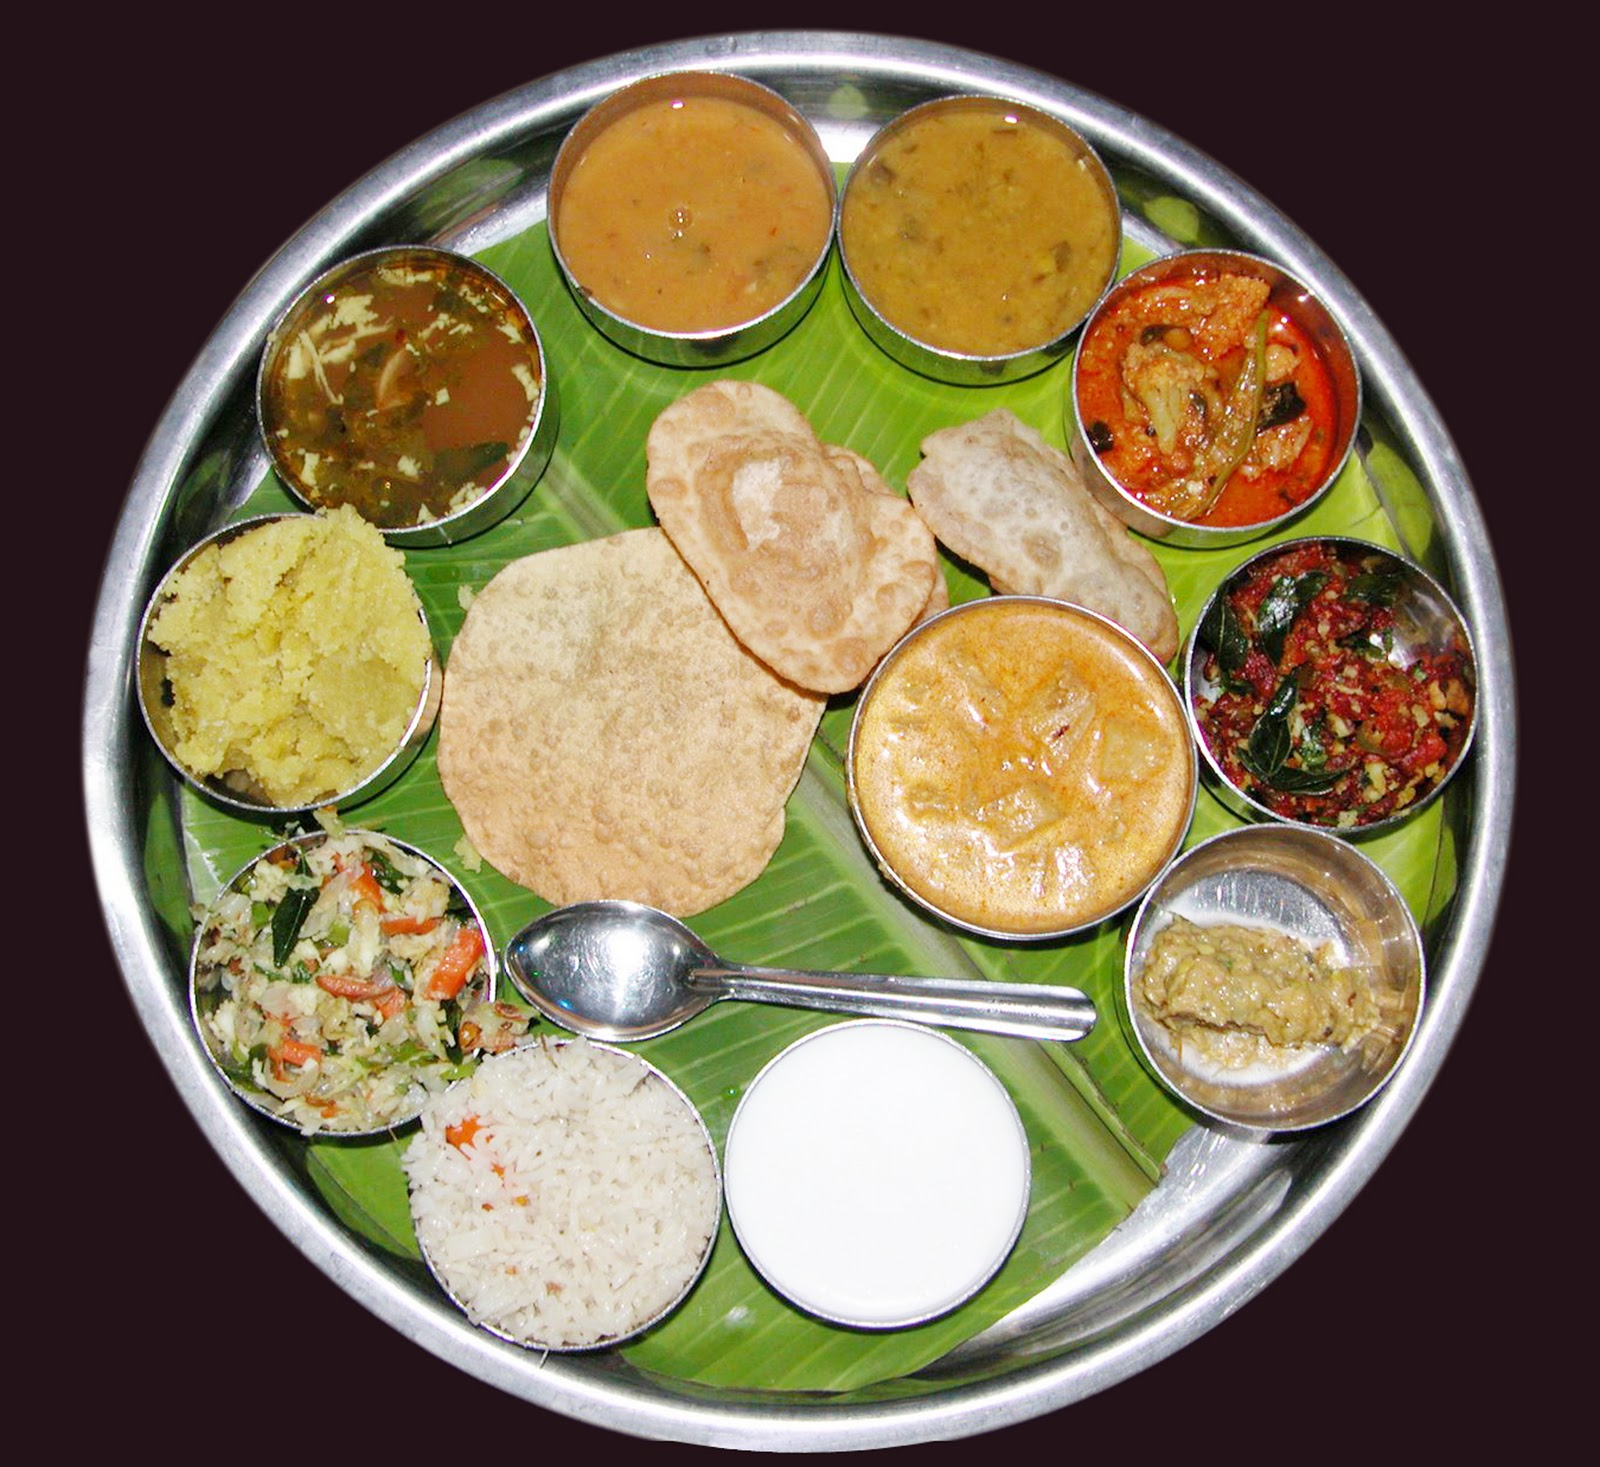 Indian food images thali menu calori chart picture photography item indian food images thali menu calori chart picture photography item meme photos dishes south indian foods indian food images thali menu calori chart forumfinder Choice Image